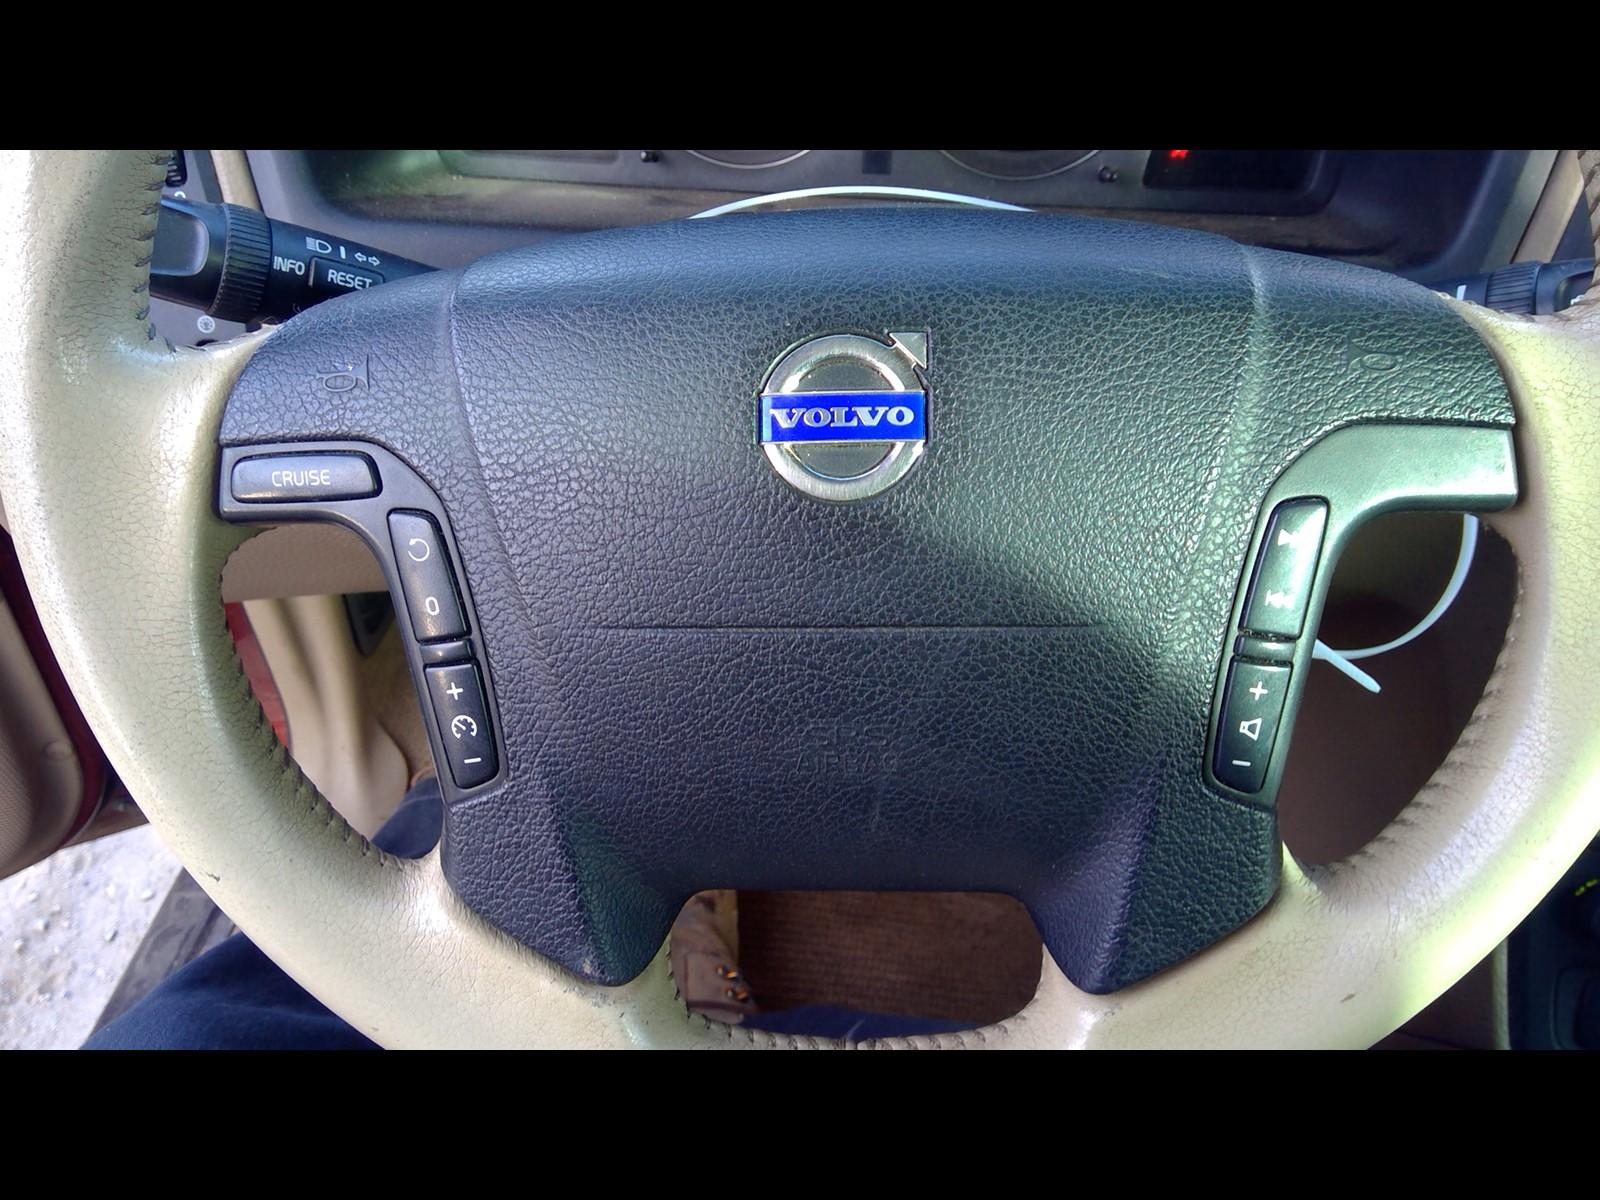 Used Audio Visual System (Radio) for sale for a 2004 Volvo XC70 | PartsMarket